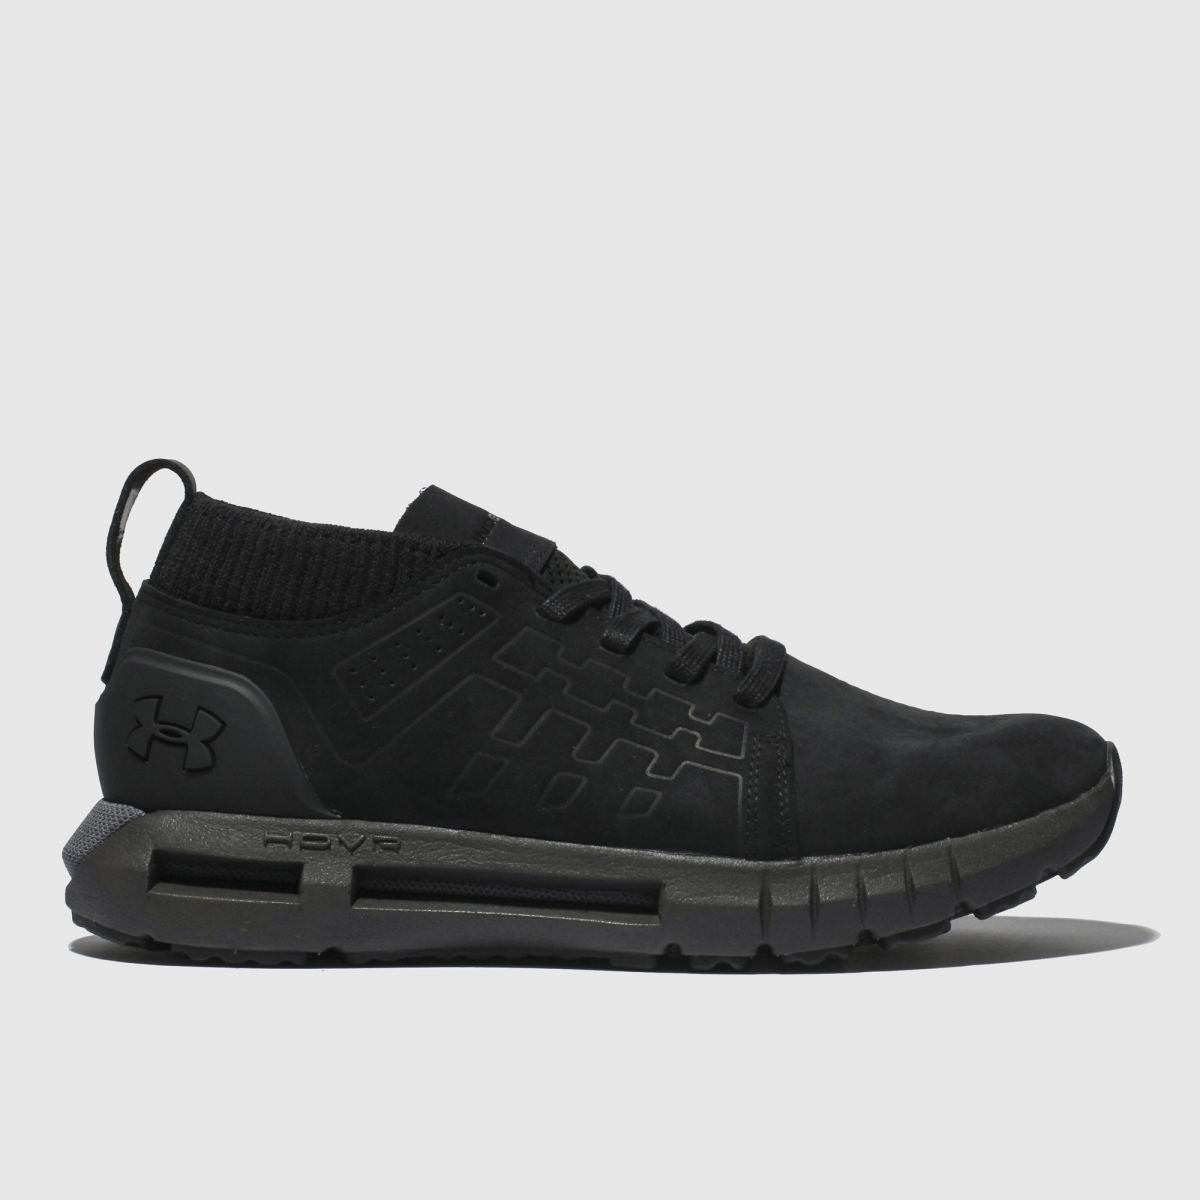 Under Armour Black Hovr Lace Up Mid Trainers